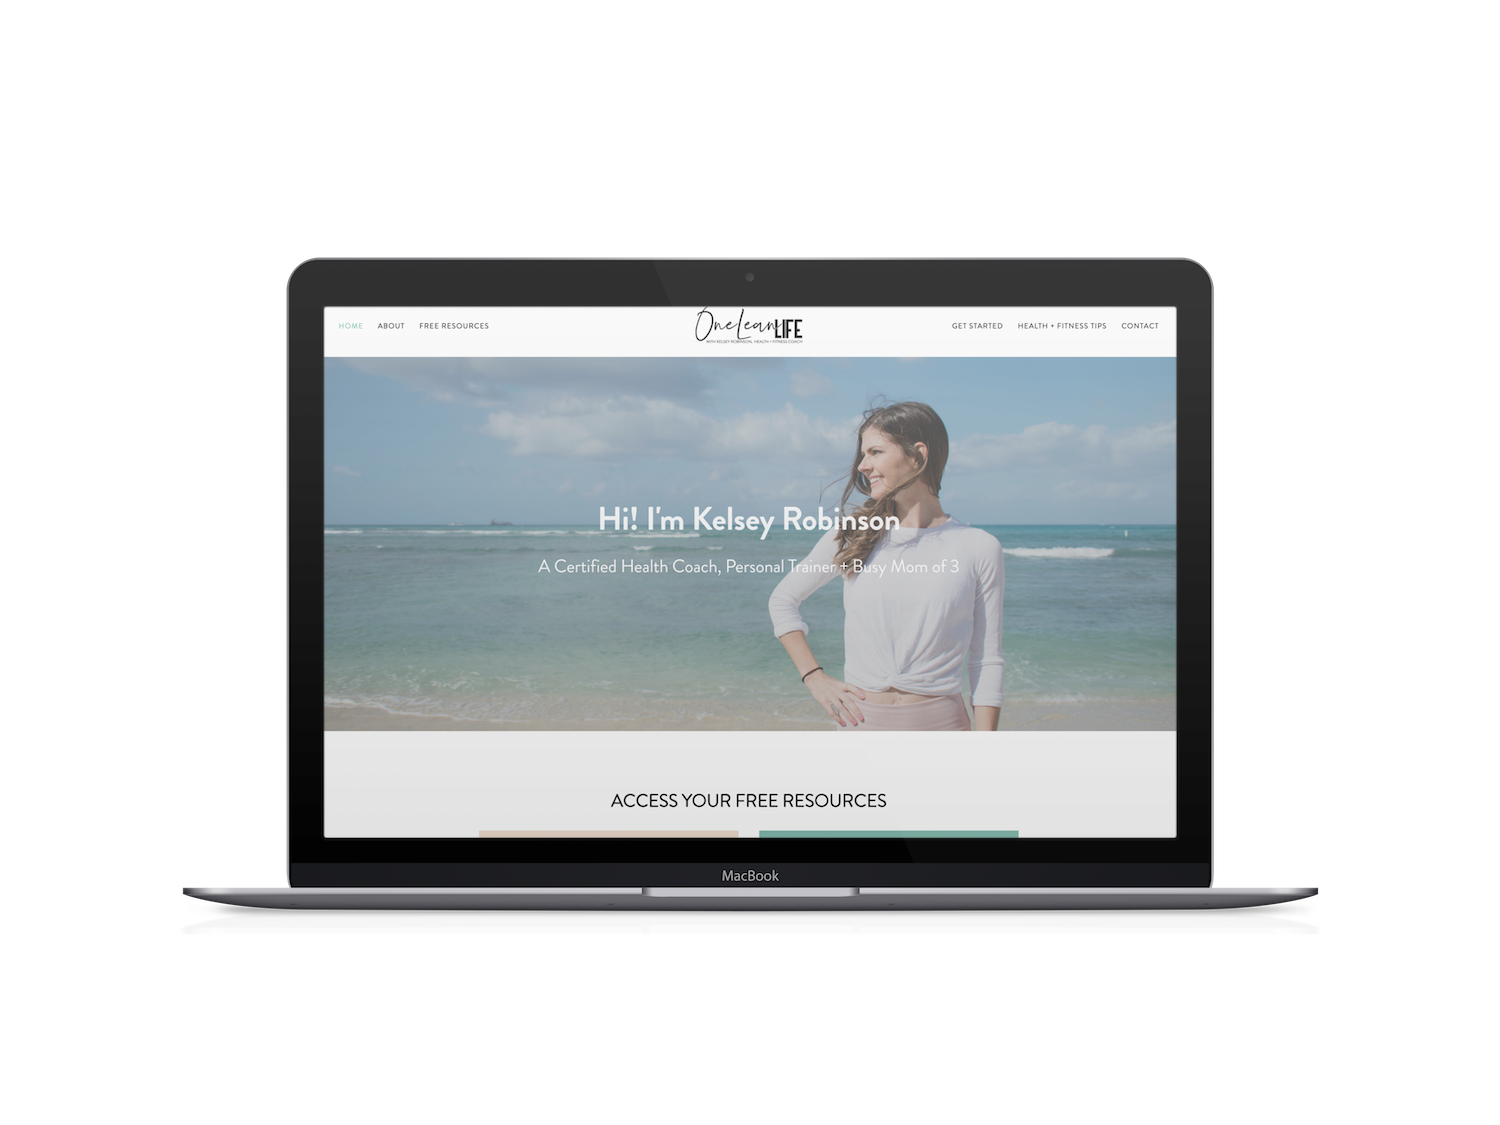 health coach website design one lean life